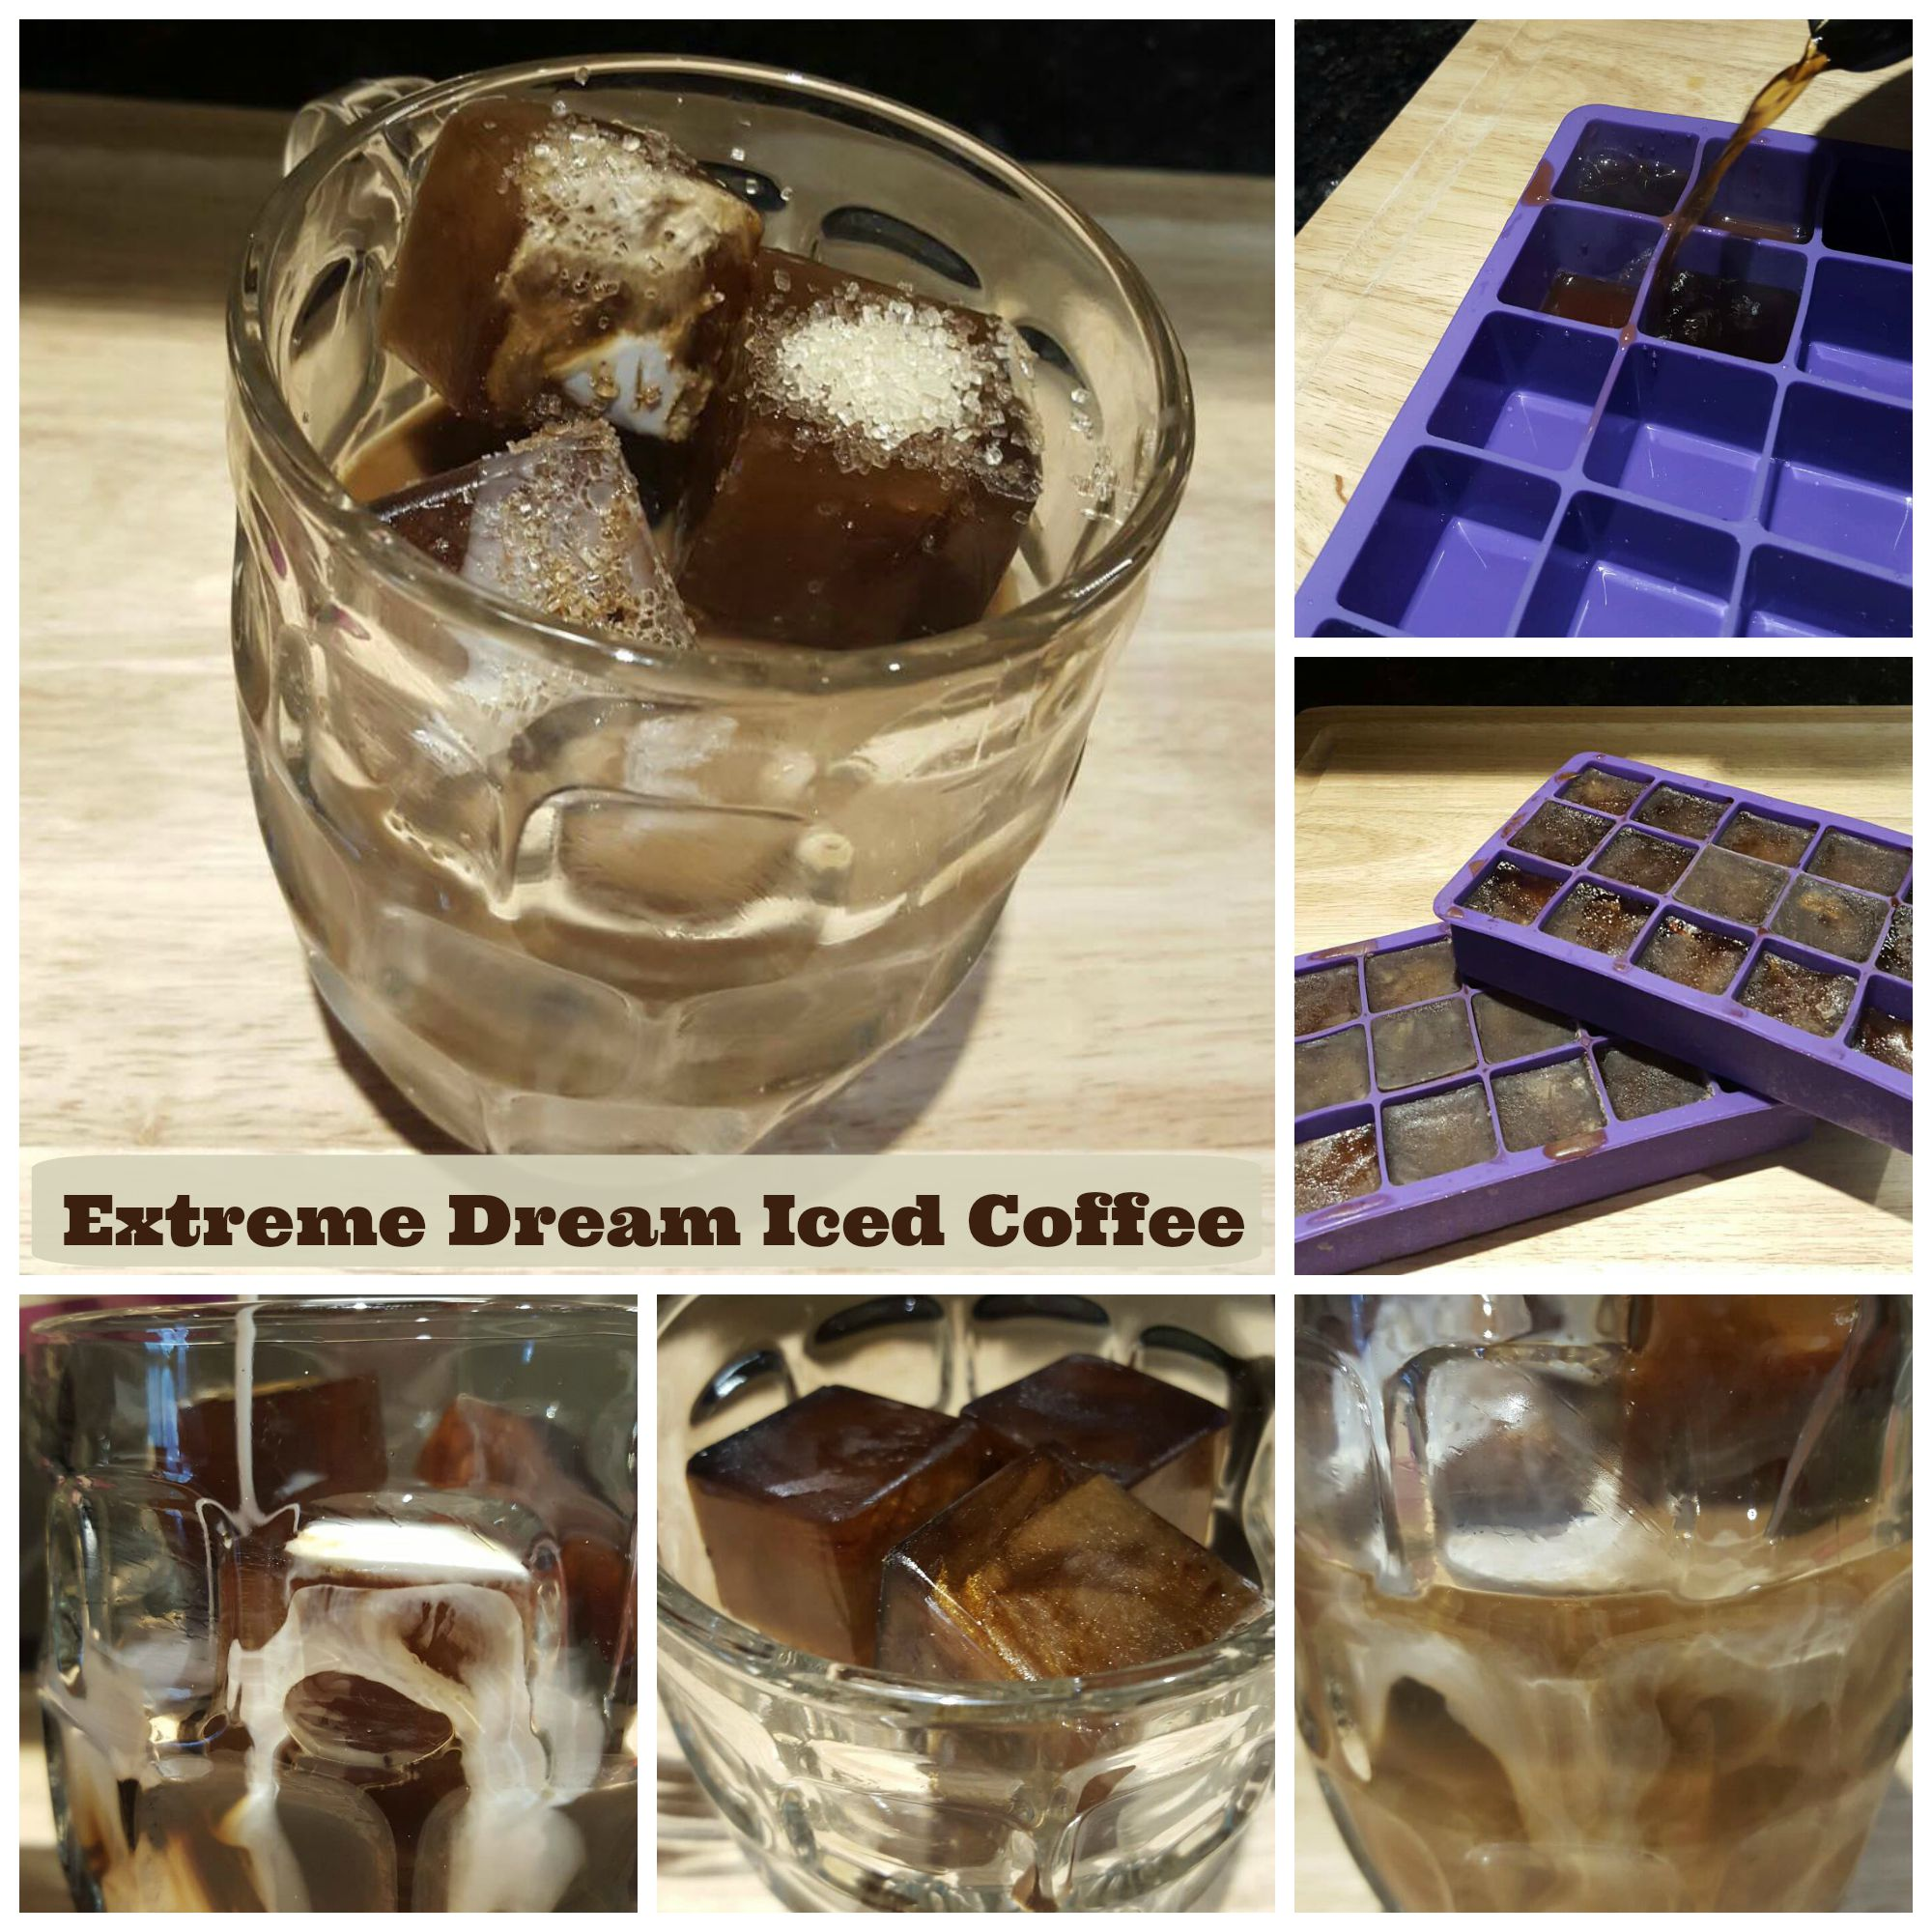 Extreme Dream Iced Coffee